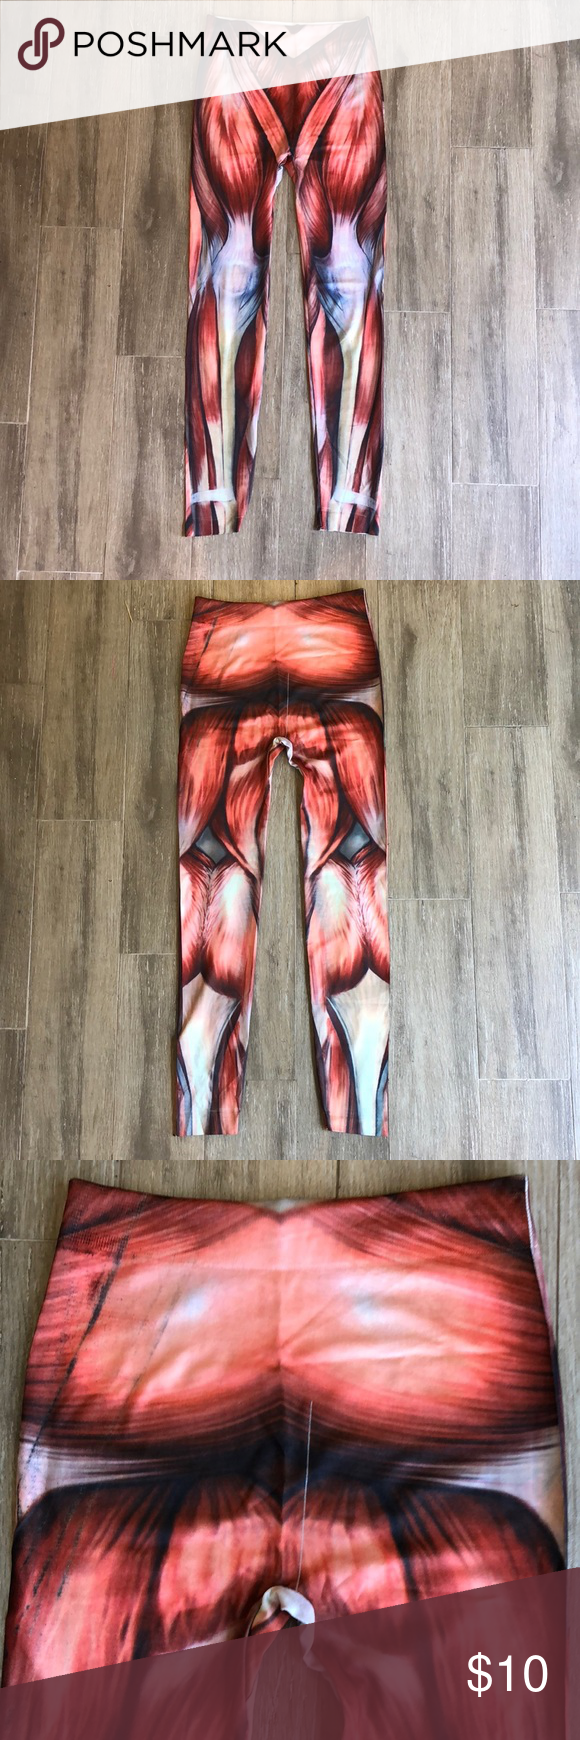 Muscle Leggings Here Are The Human Anatomy Muscle Leggings I